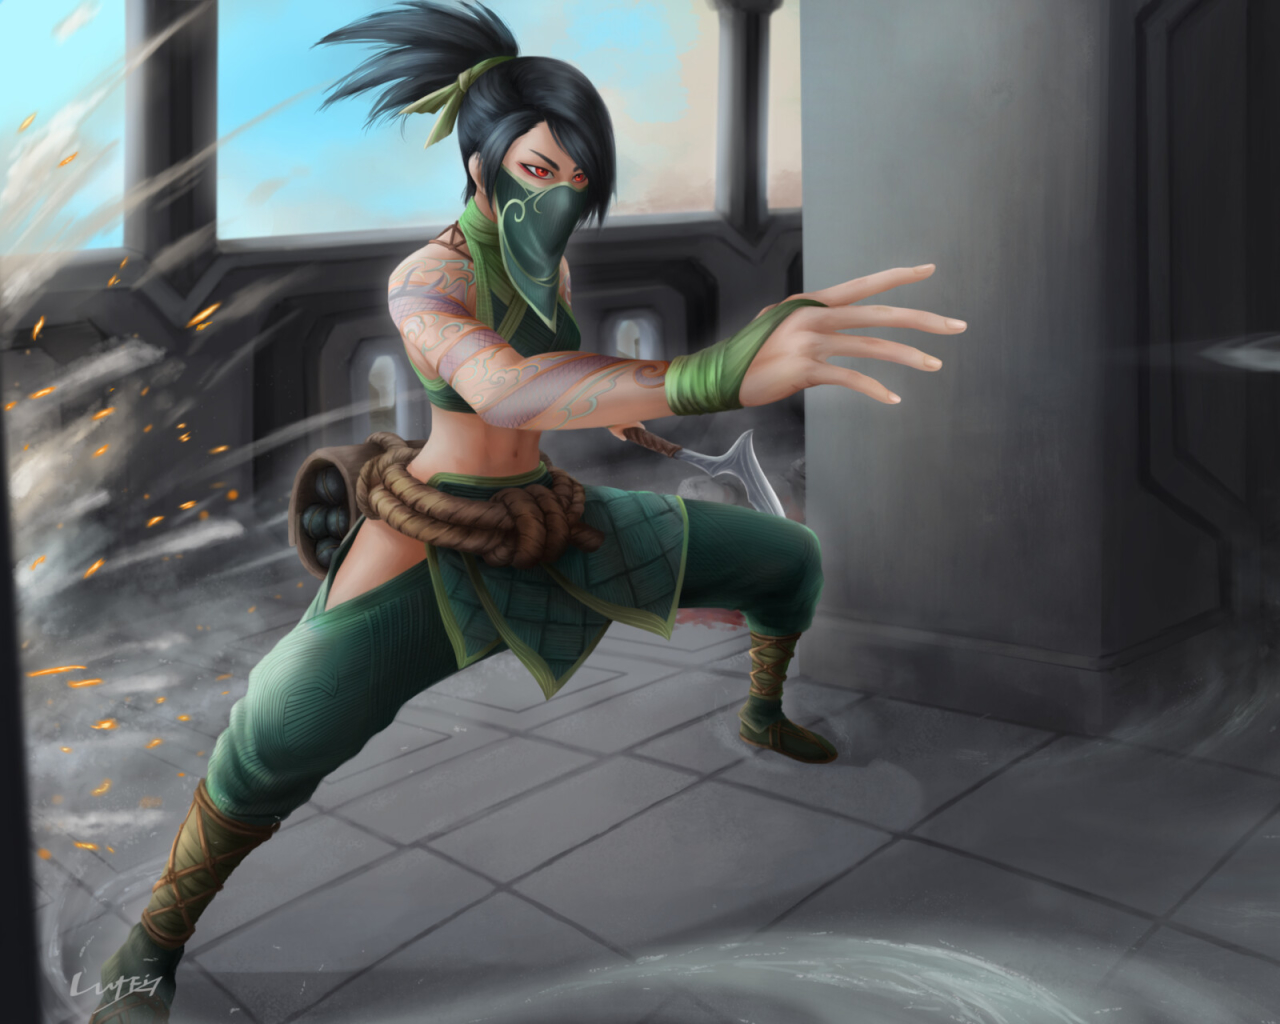 Akali from League Of Legends Wallpaper in 1280x1024 Resolution